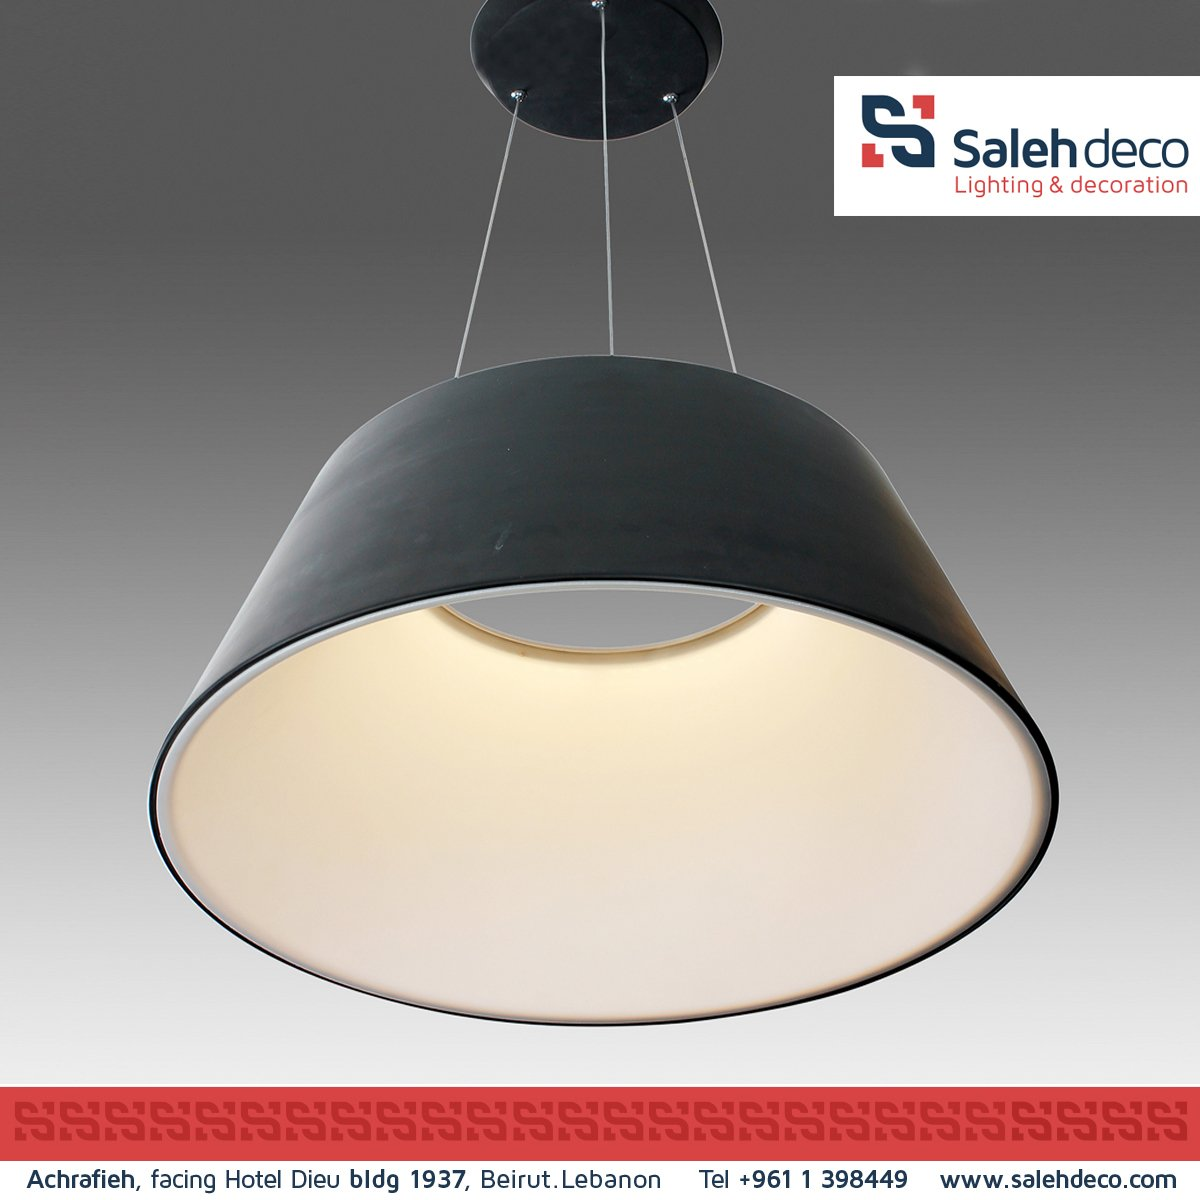 Today's choice is this #LED #Pendant #Light, adding the right #elegant #illumination to your #room. Available now! https://t.co/7yi32FVdBA